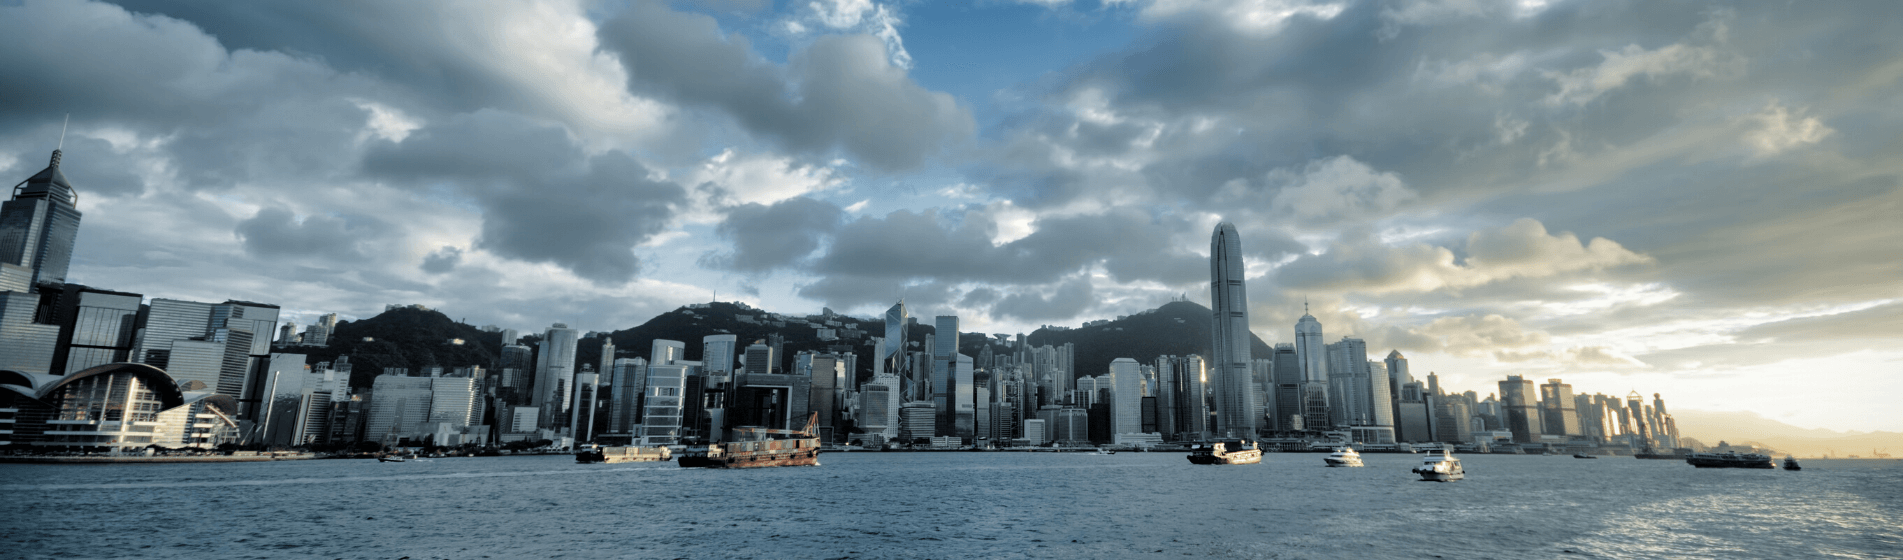 4 Reasons to Use A Hong Kong Corporation for Your Business